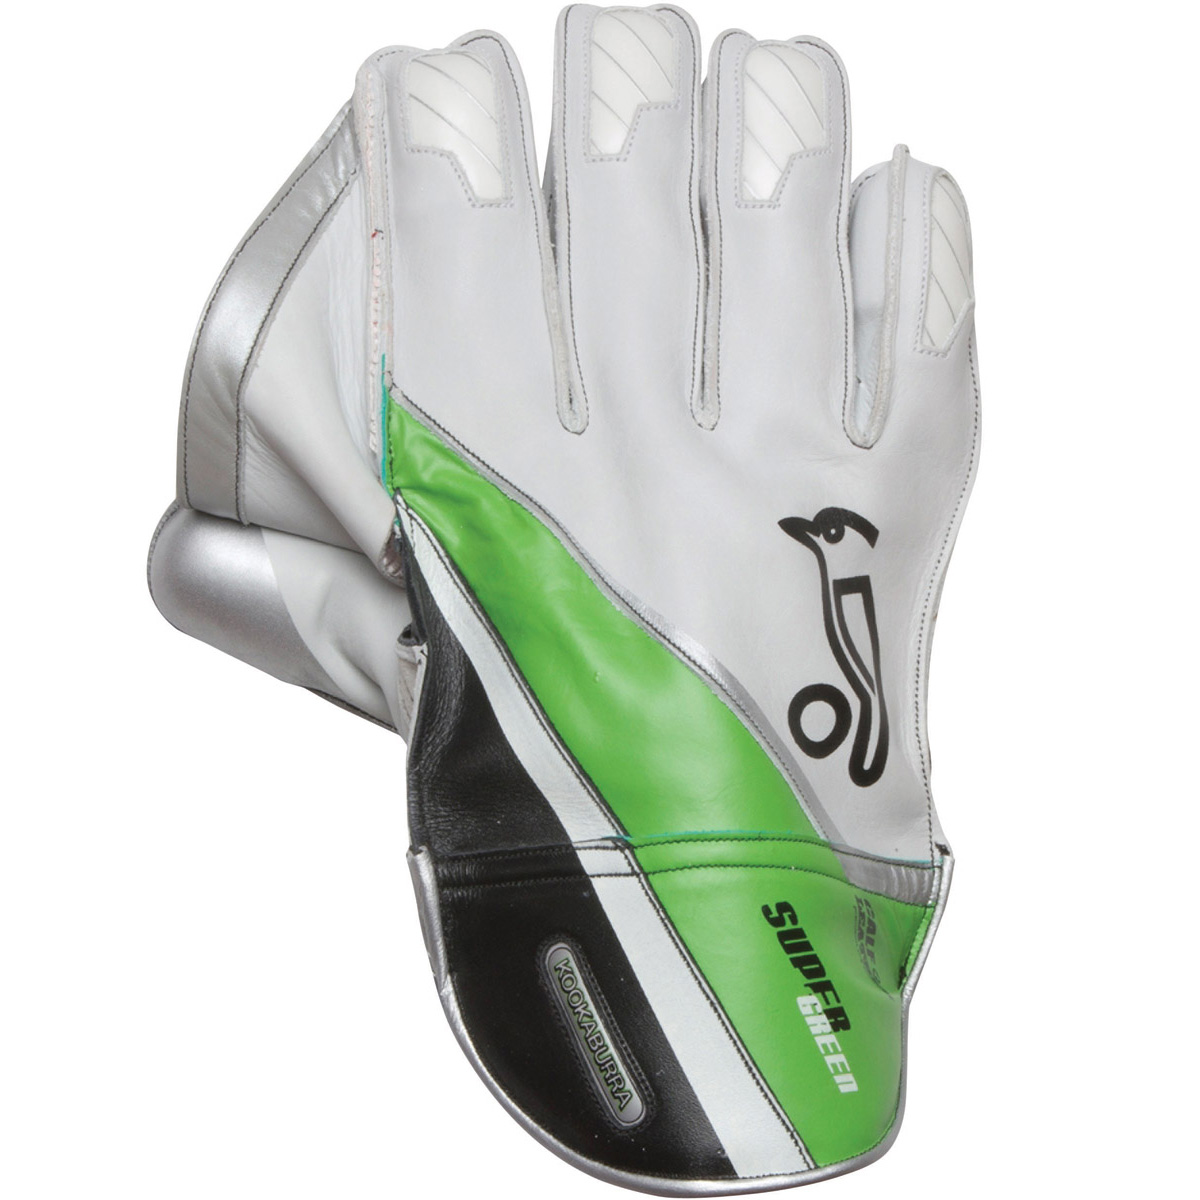 Kookaburra Super Green Cricket Wicket Keeping Gloves Buy